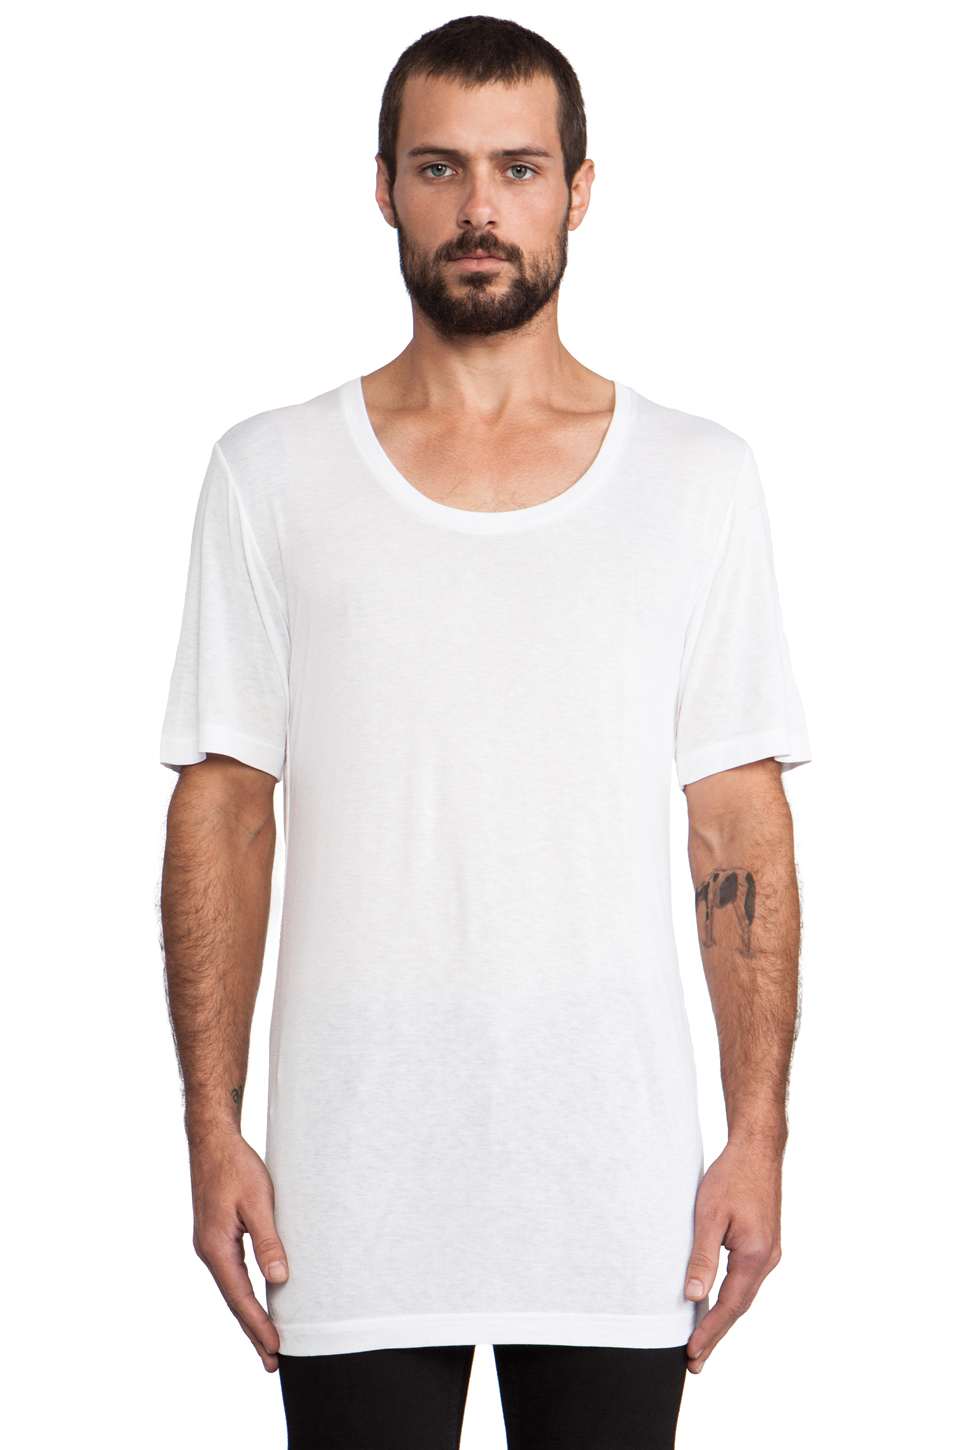 BLK DNM T-Shirt 12 in White